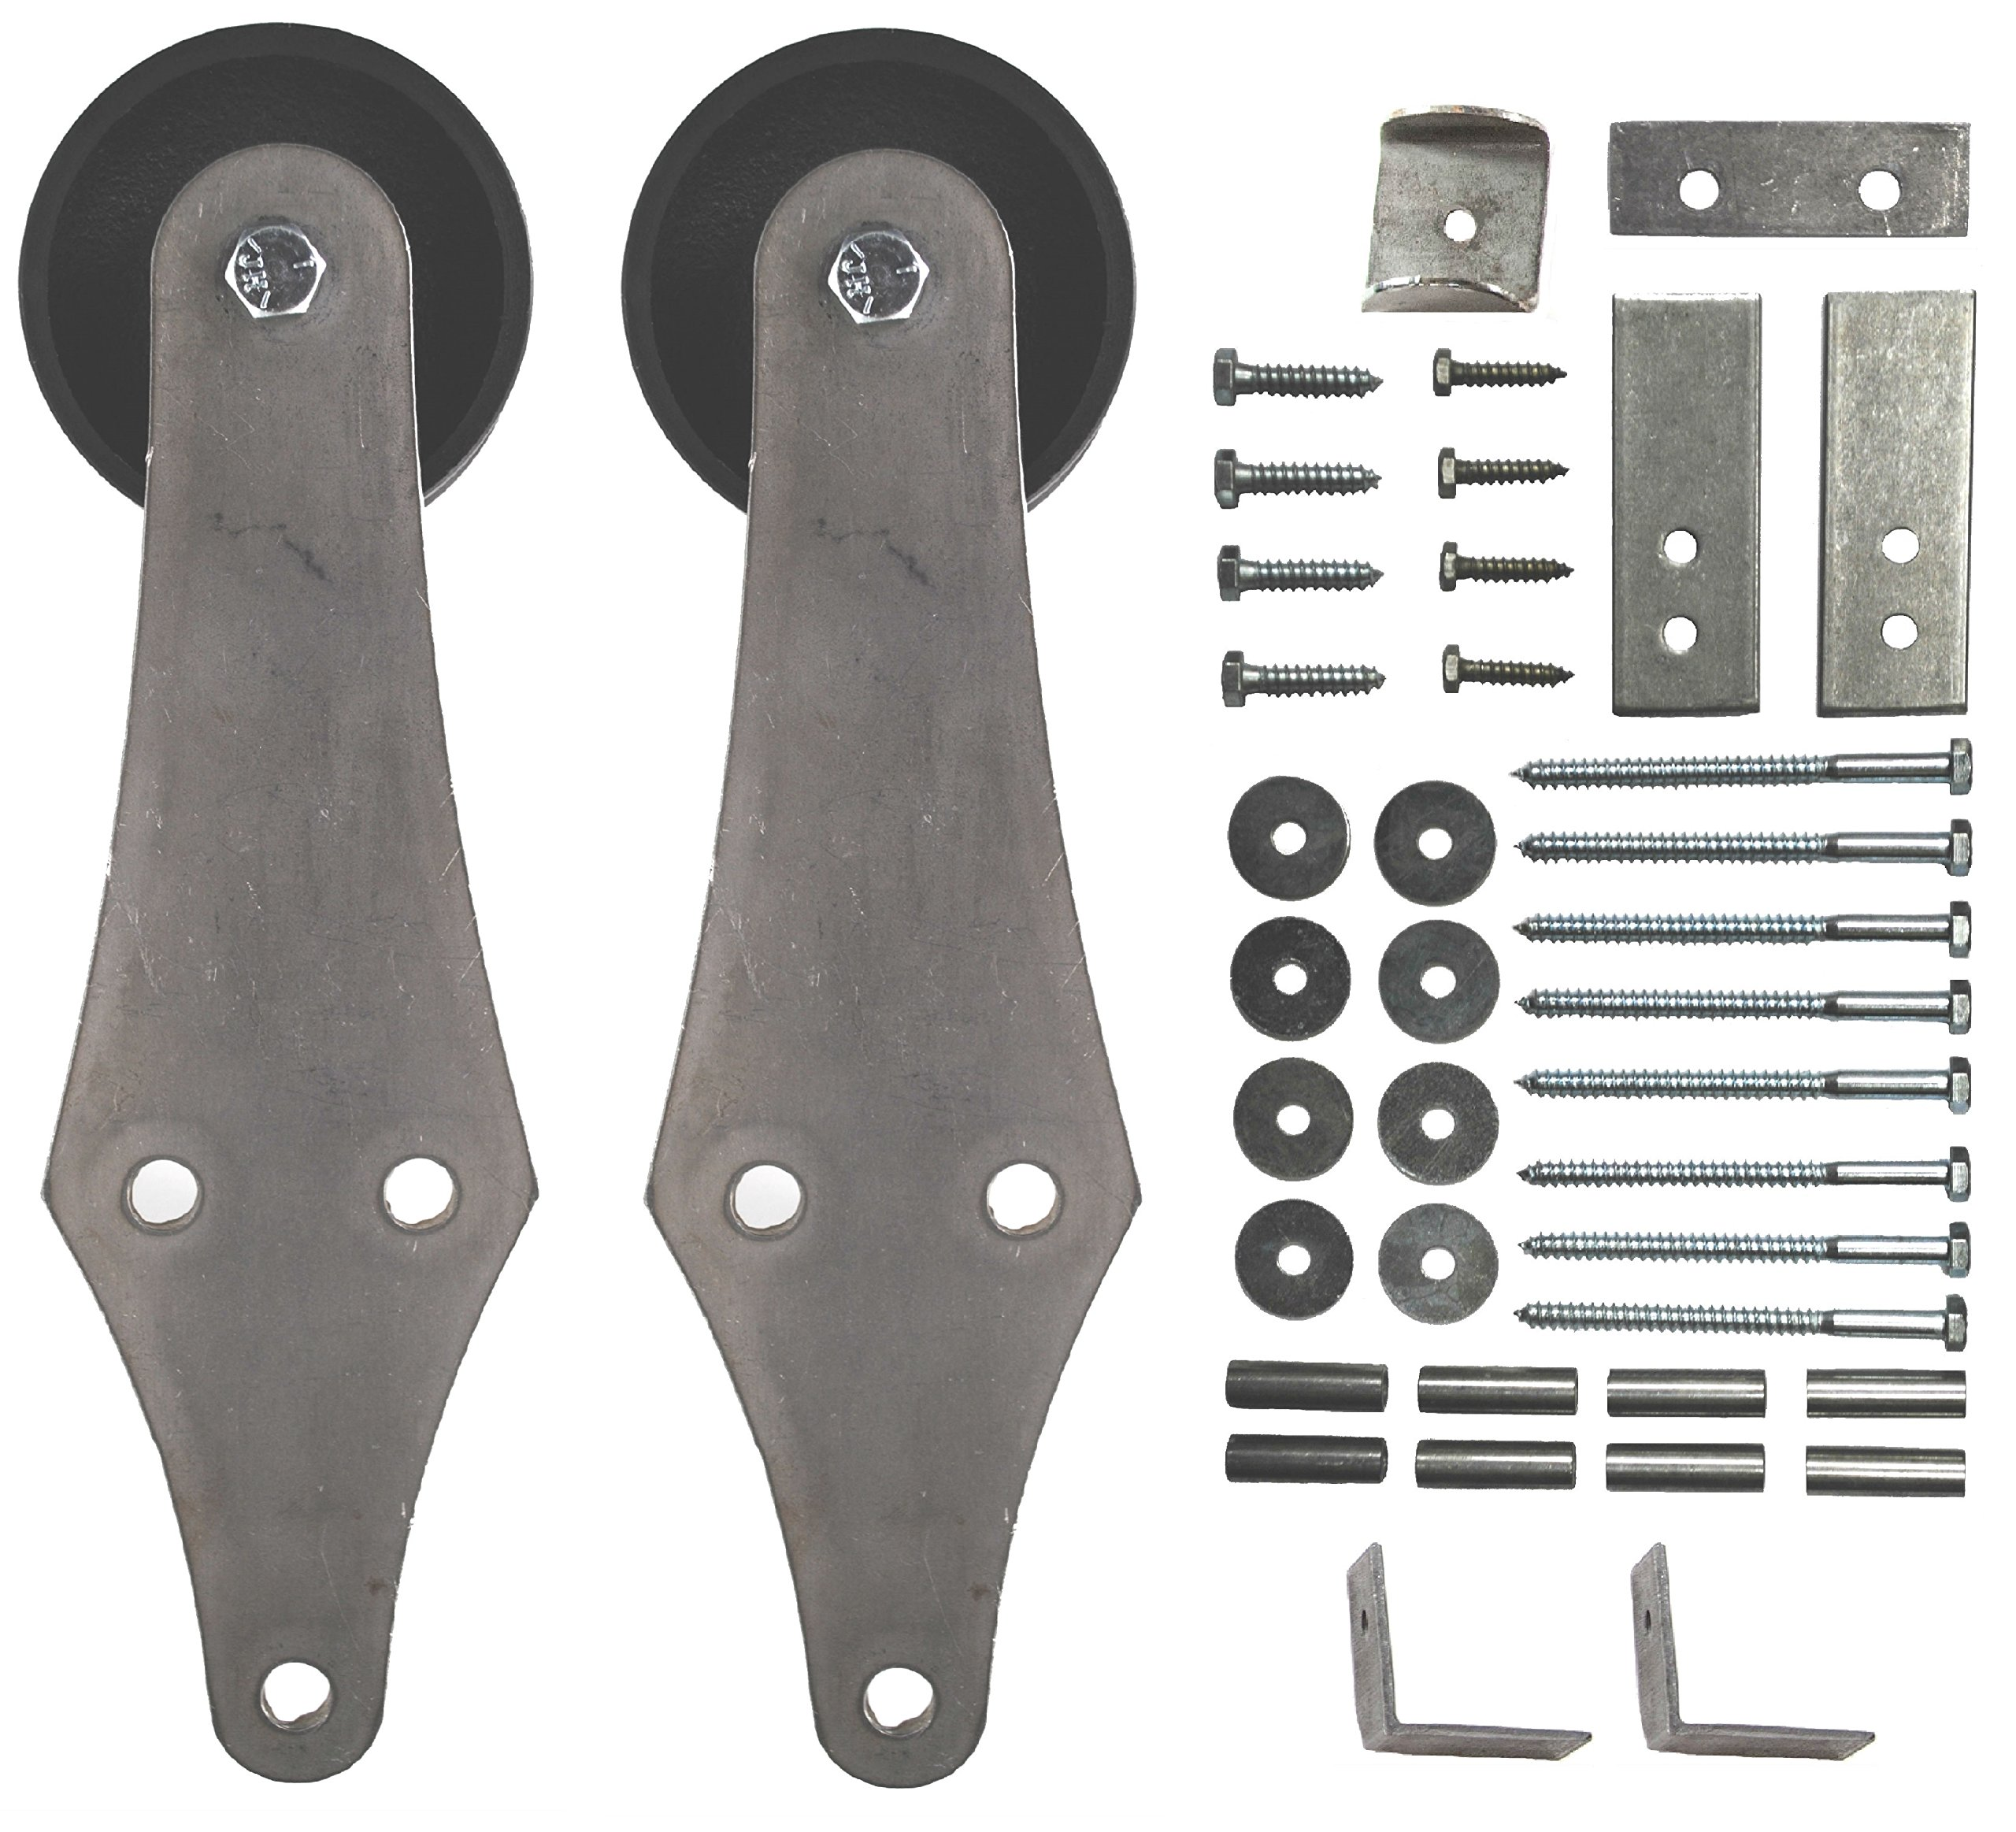 Sliding Barn Door Hanger Kit Hinge Style with Hardware - 2 pcs. (No Track) by Mapp Caster